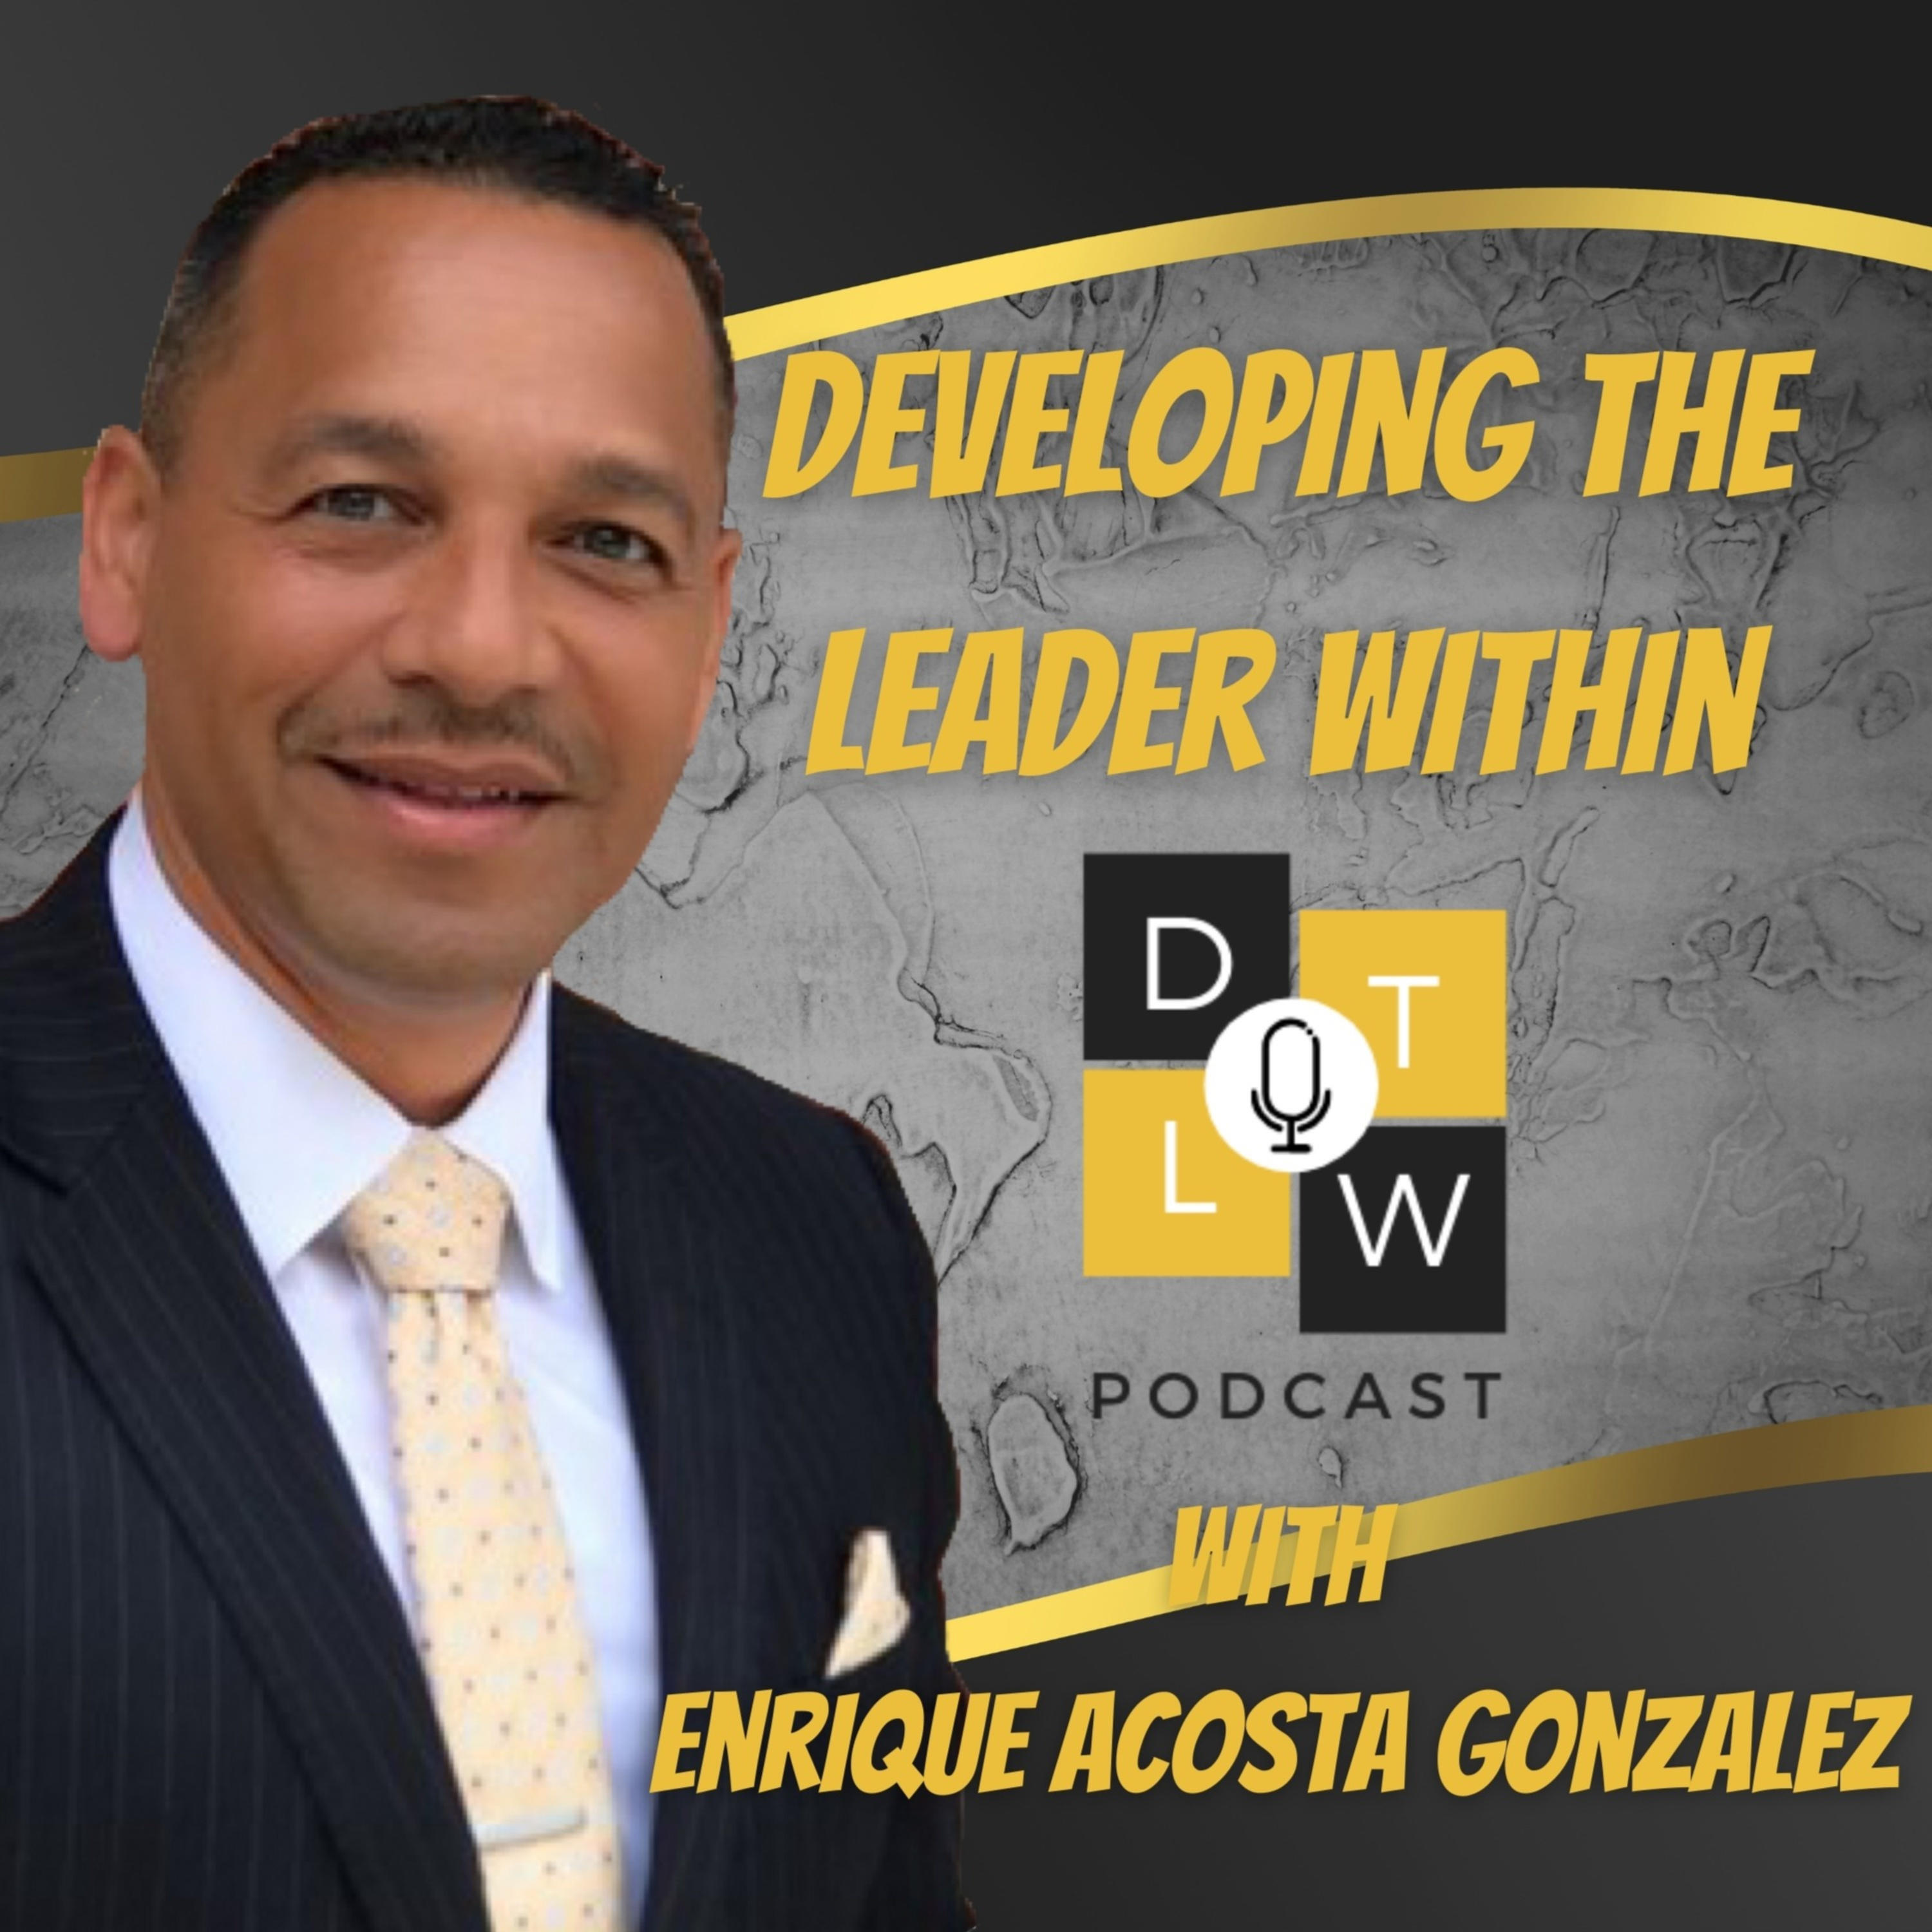 Developing the leader within Podcast